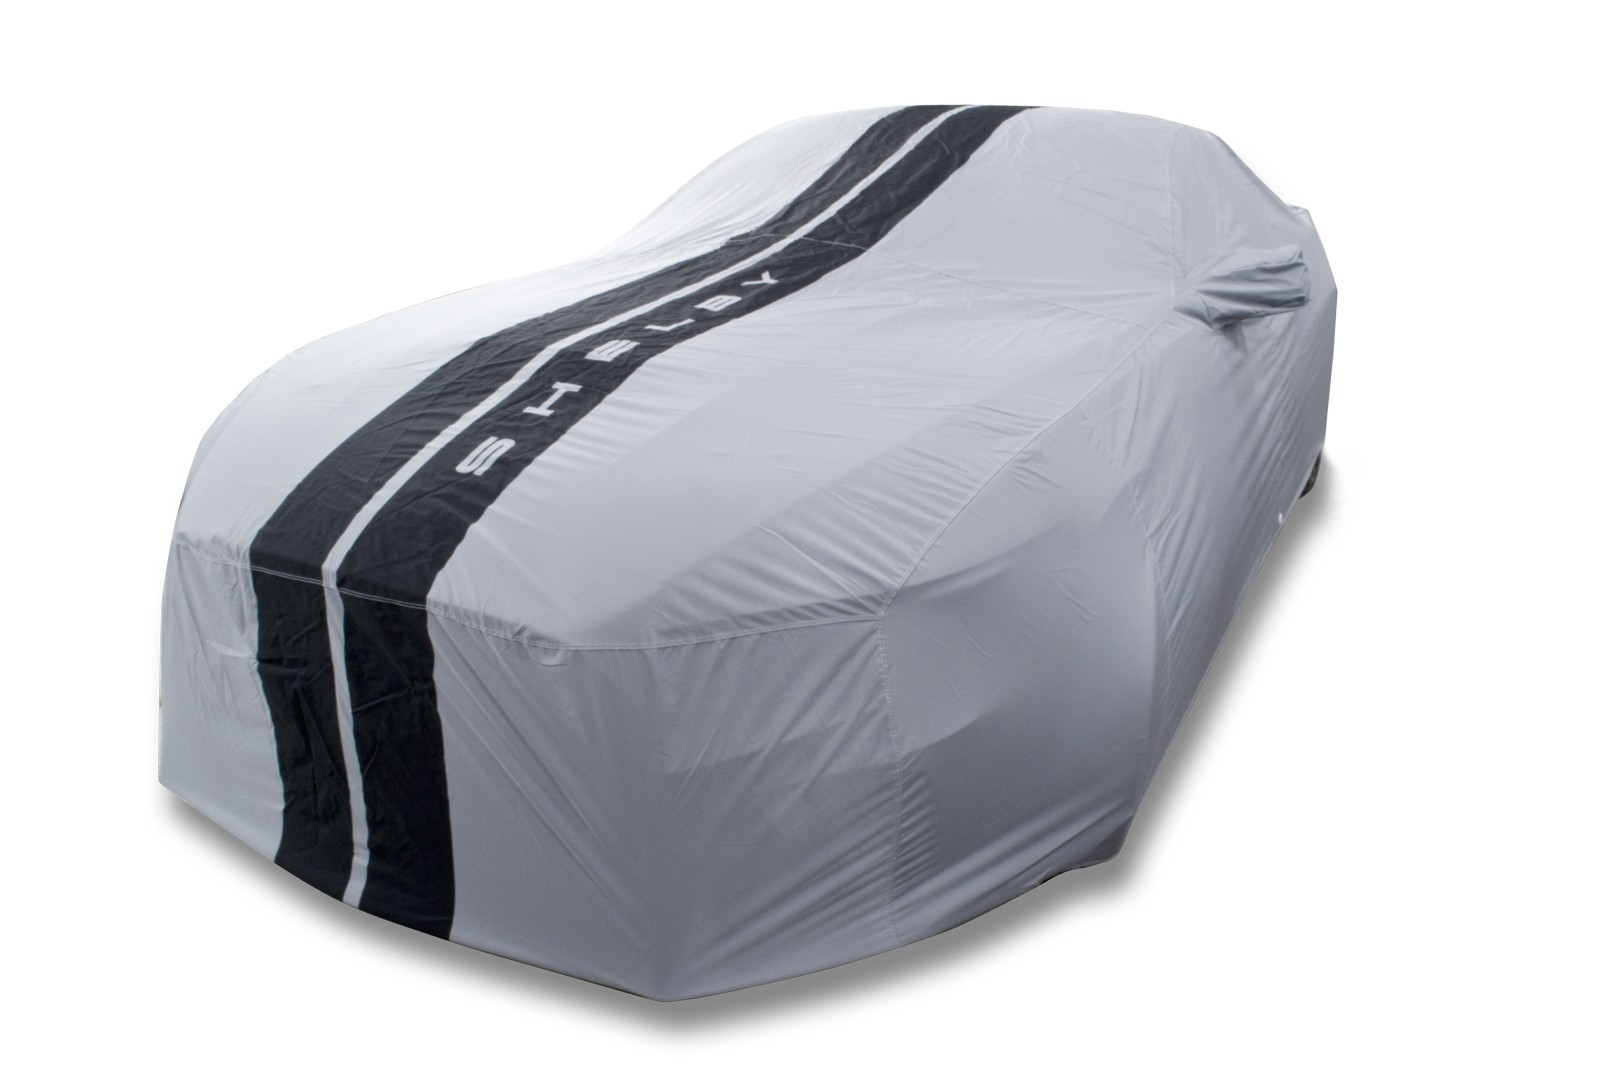 mustang shelby gt genuine ford weathershield car cover  snake logo